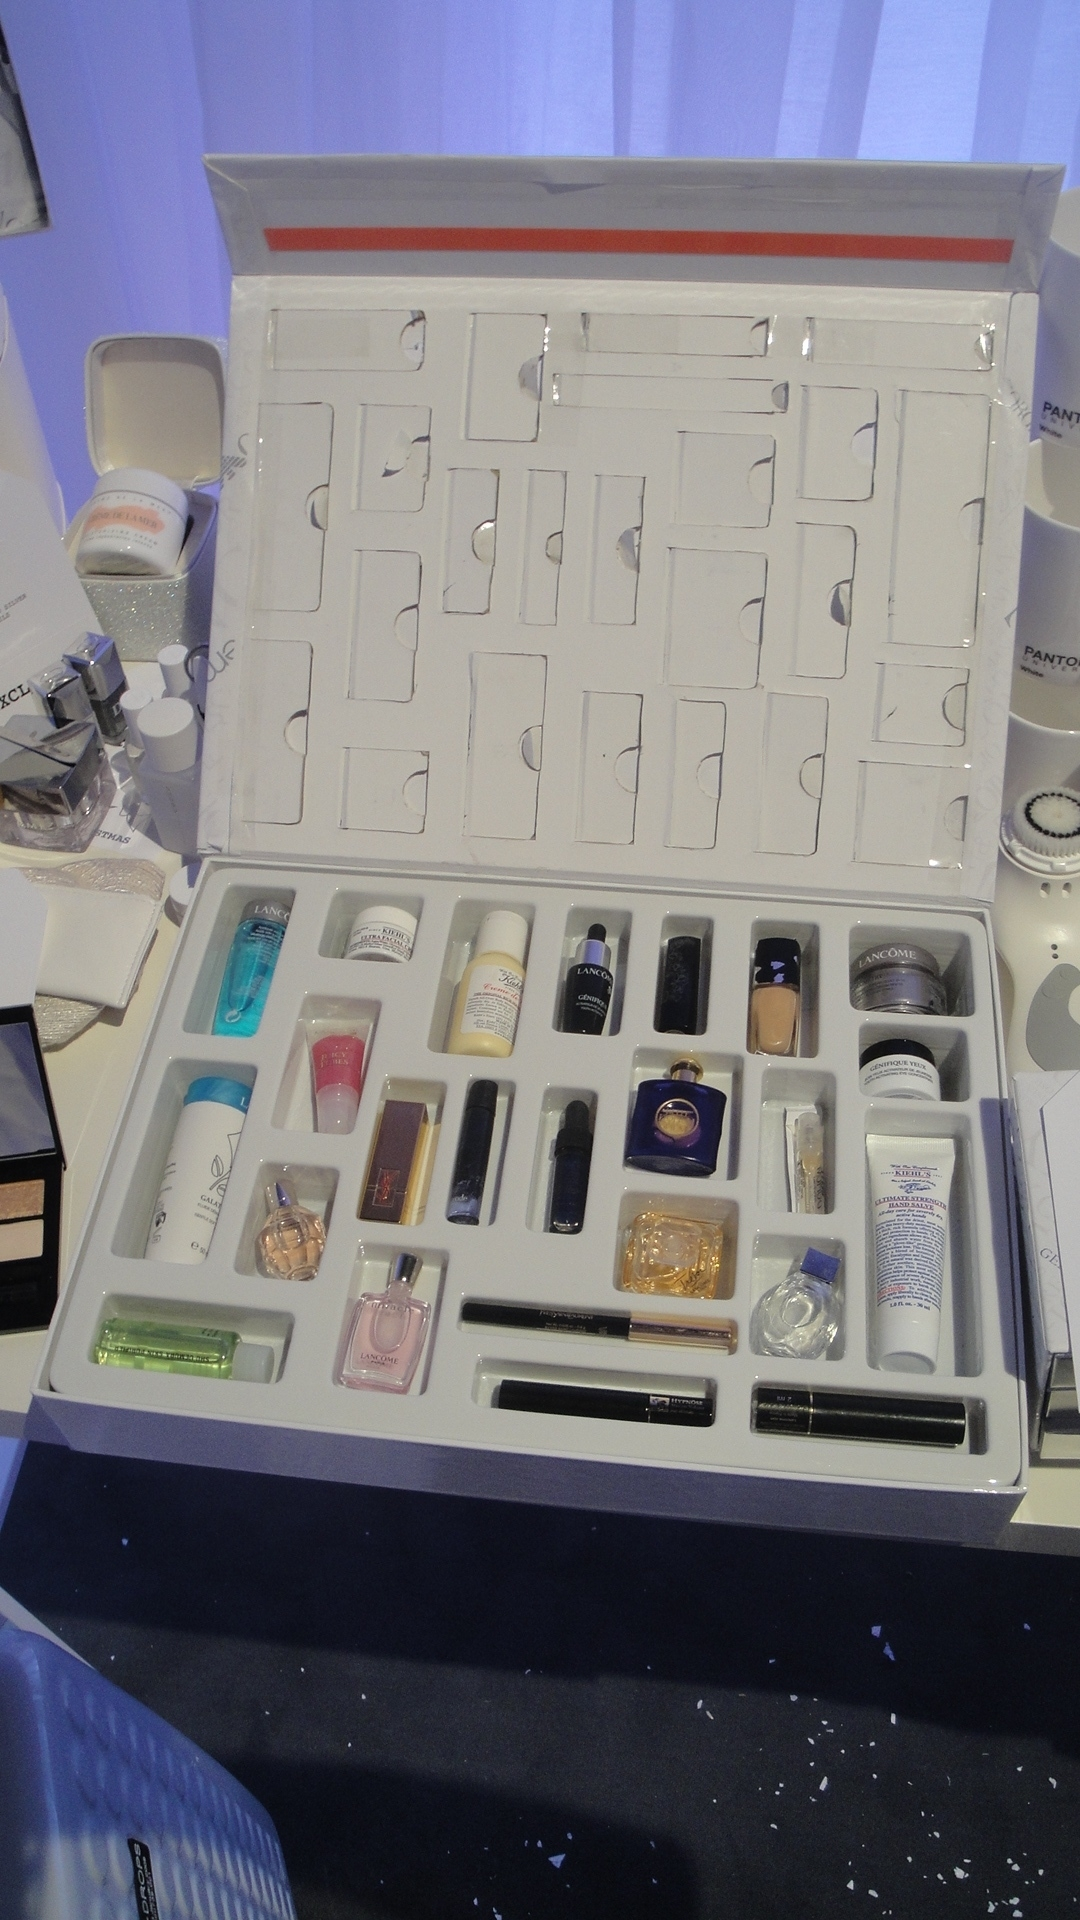 Get It Before It Sells Out: The Lancome Luxury Advent Calendar for Girls Advent Calendar With Gifts